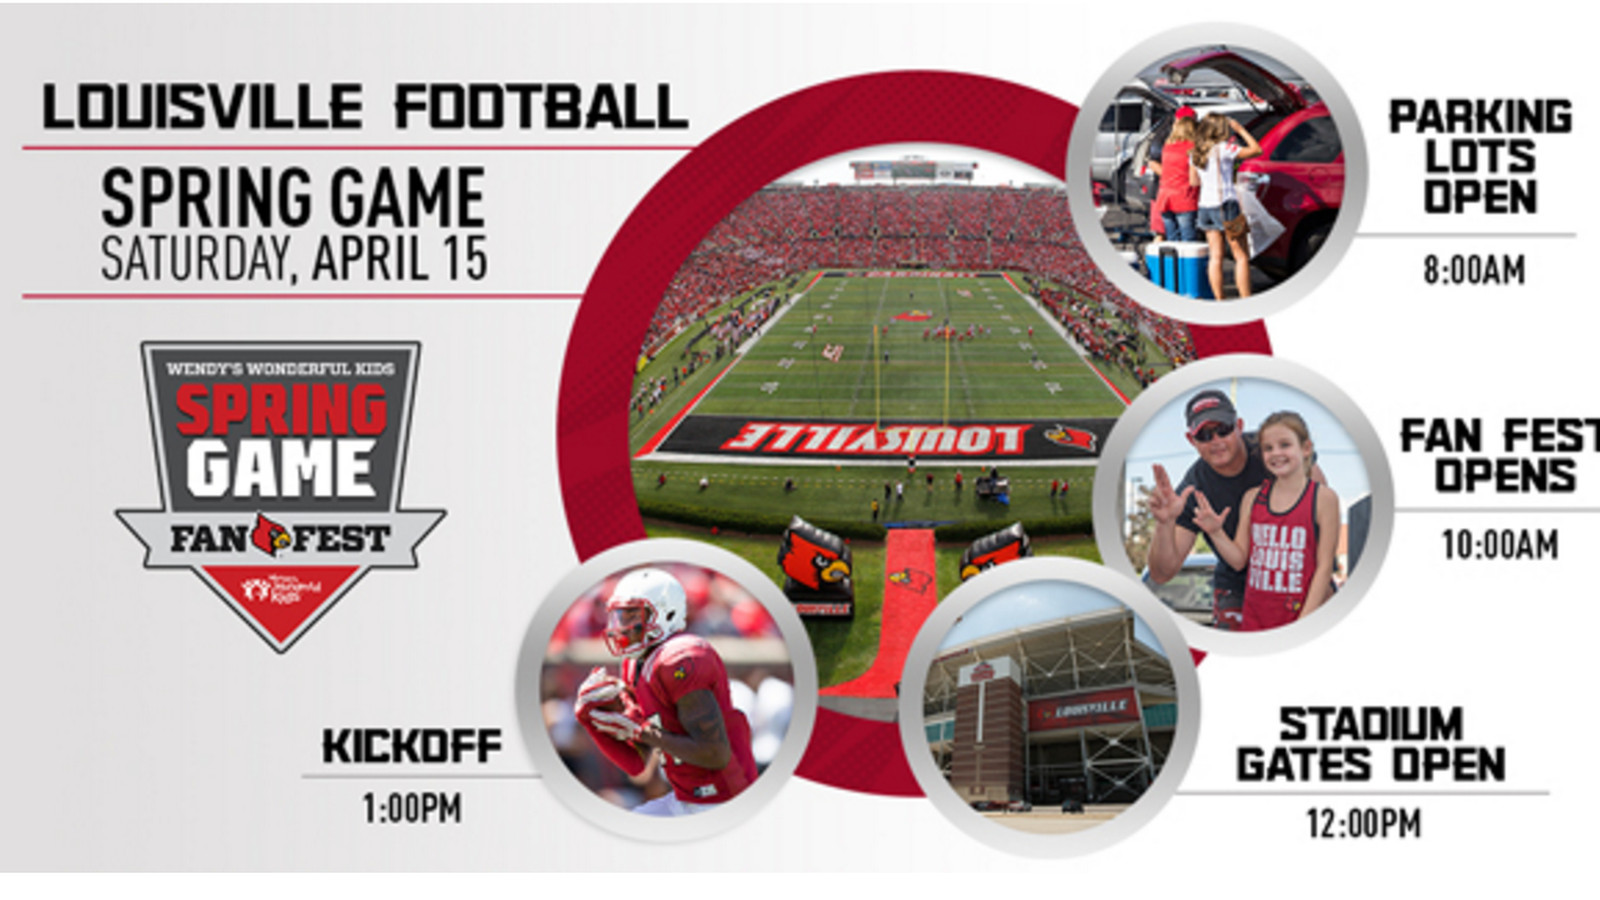 2017 Louisville Football Spring Game Schedule Of Events ...